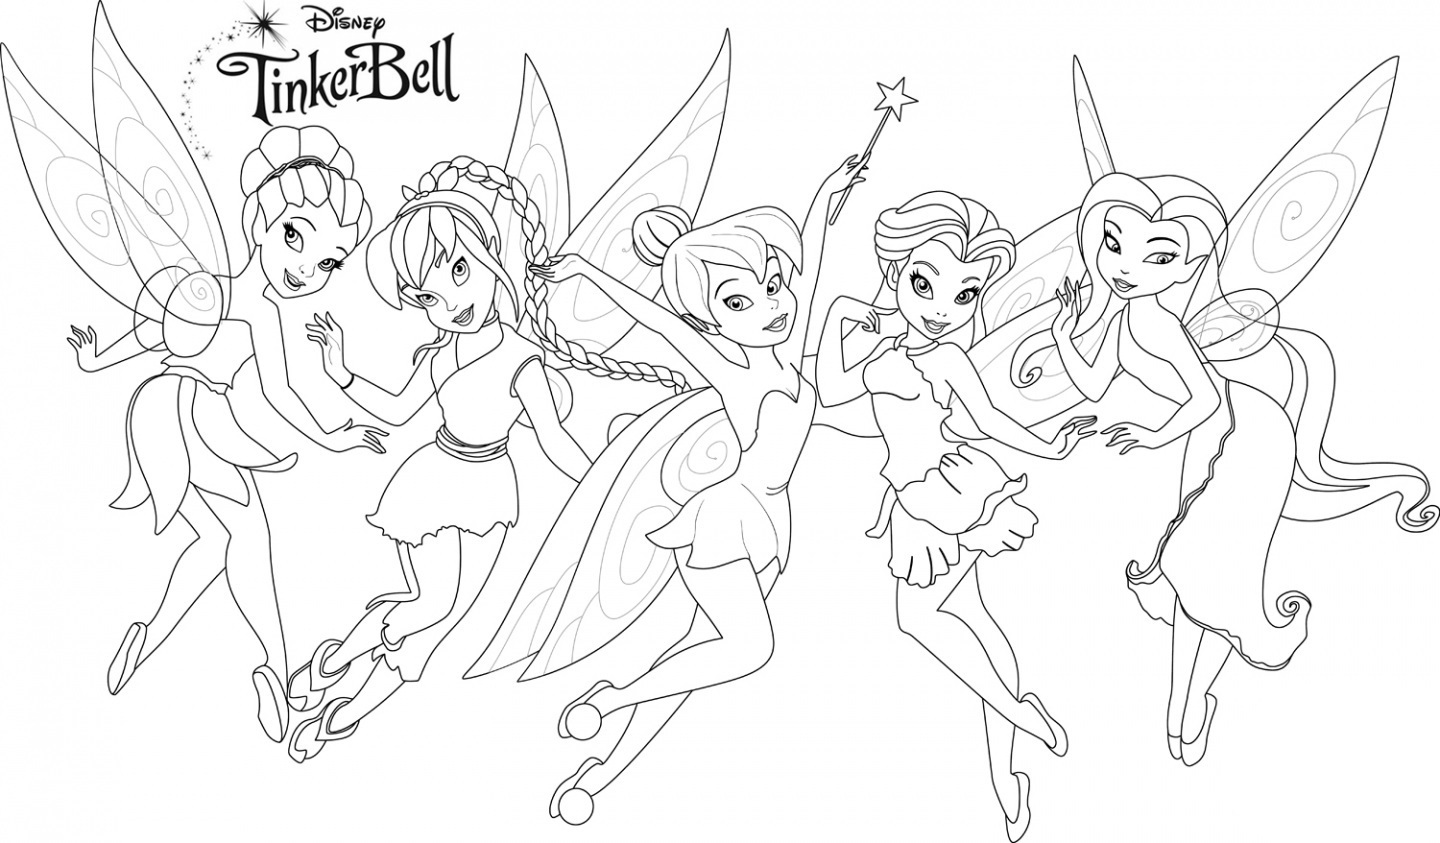 tinkerbell-and-friends-coloring-pages-disney